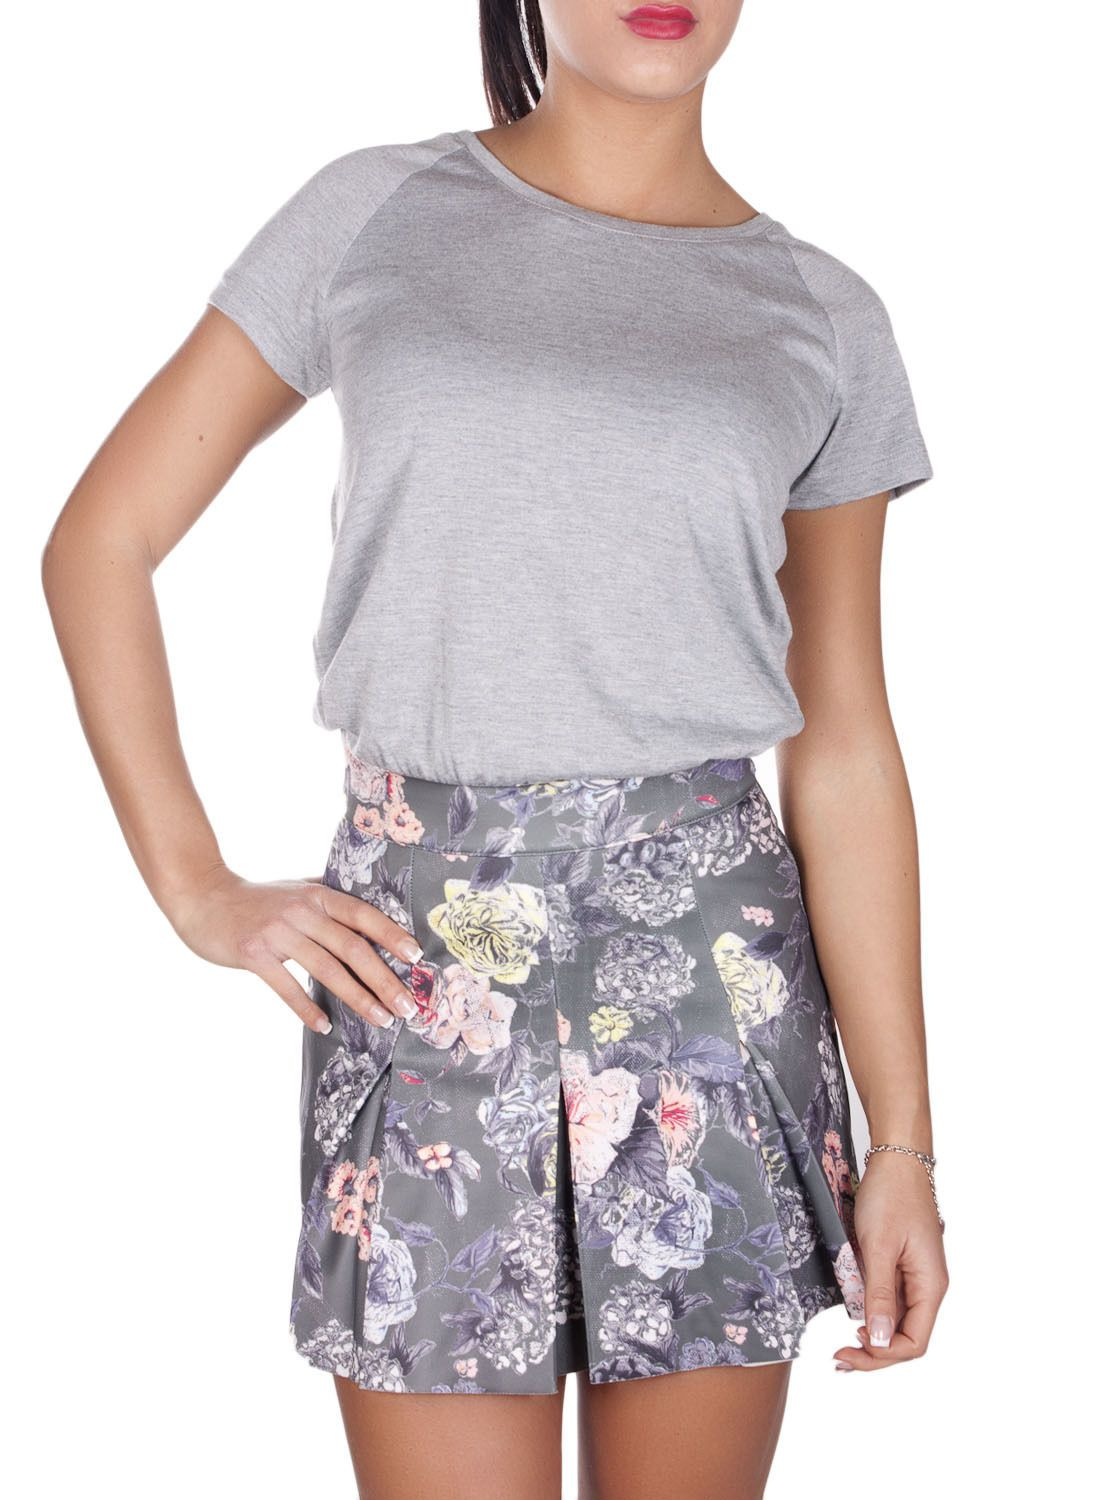 Gorgeous scuba fantasy, flirty, scuba skirt with attached T-shirt.  Available with light or dark skirt design. Sizes S to L and only £24!!  http://www.sorelle-boutique.co.uk/anna-dark-grey #sorelleboutique #veromoda #anna #dress #fantasy #boxpleat